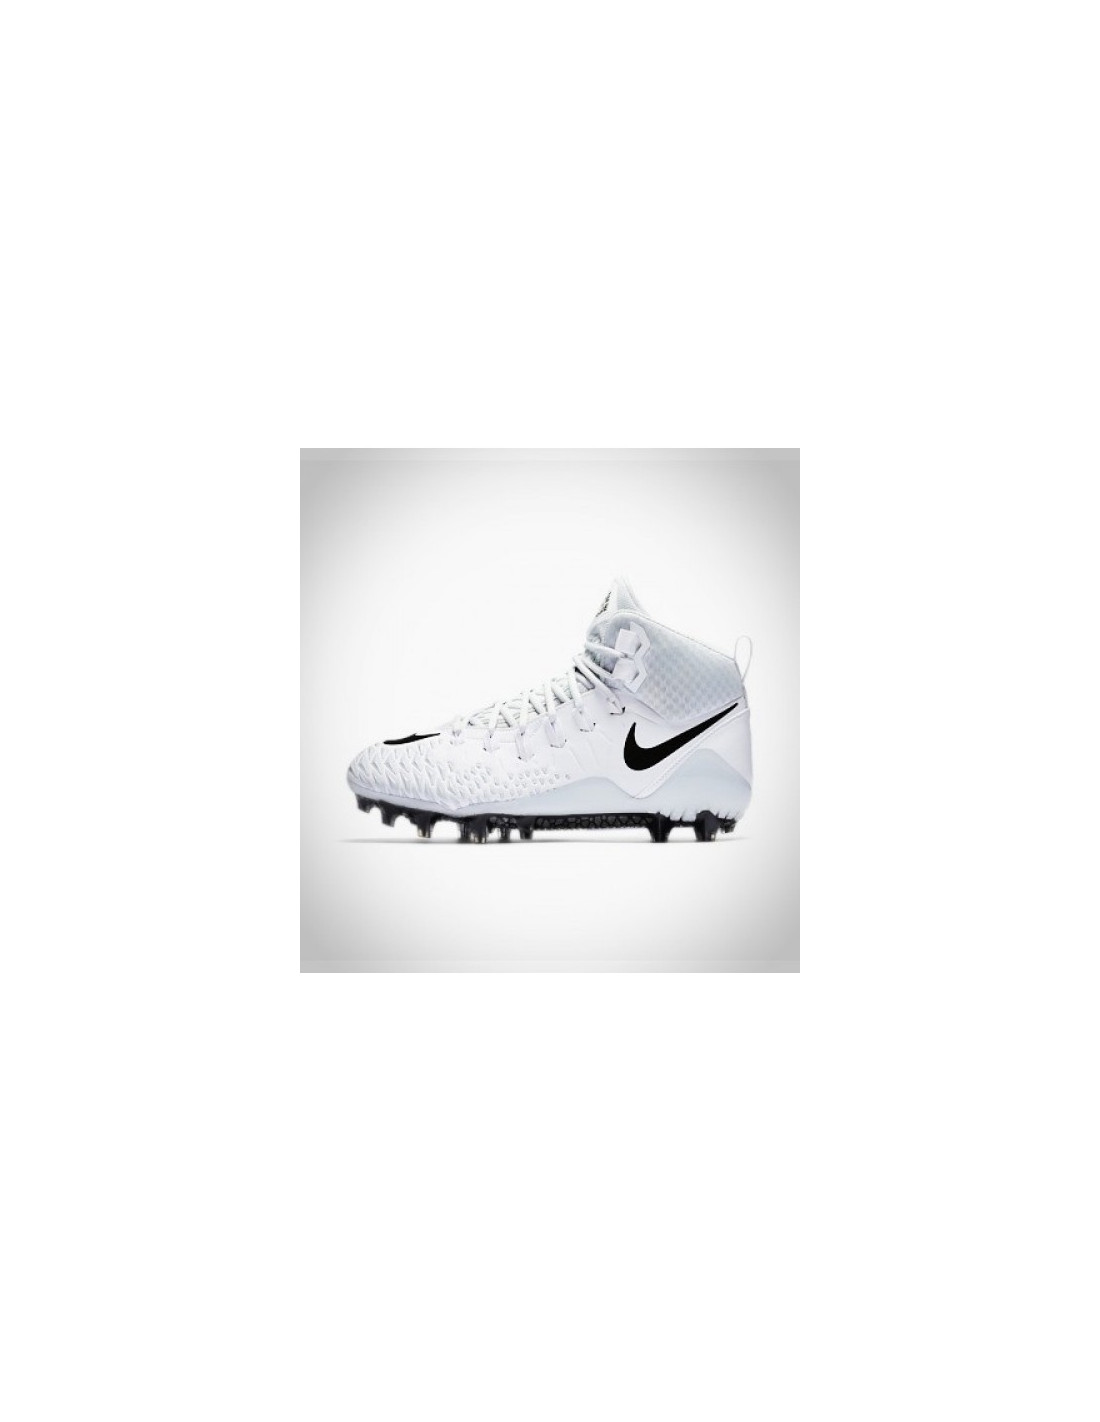 acc3bf9ddac Nike Force Savage Pro white grey Football Cleats - Sport House Shop